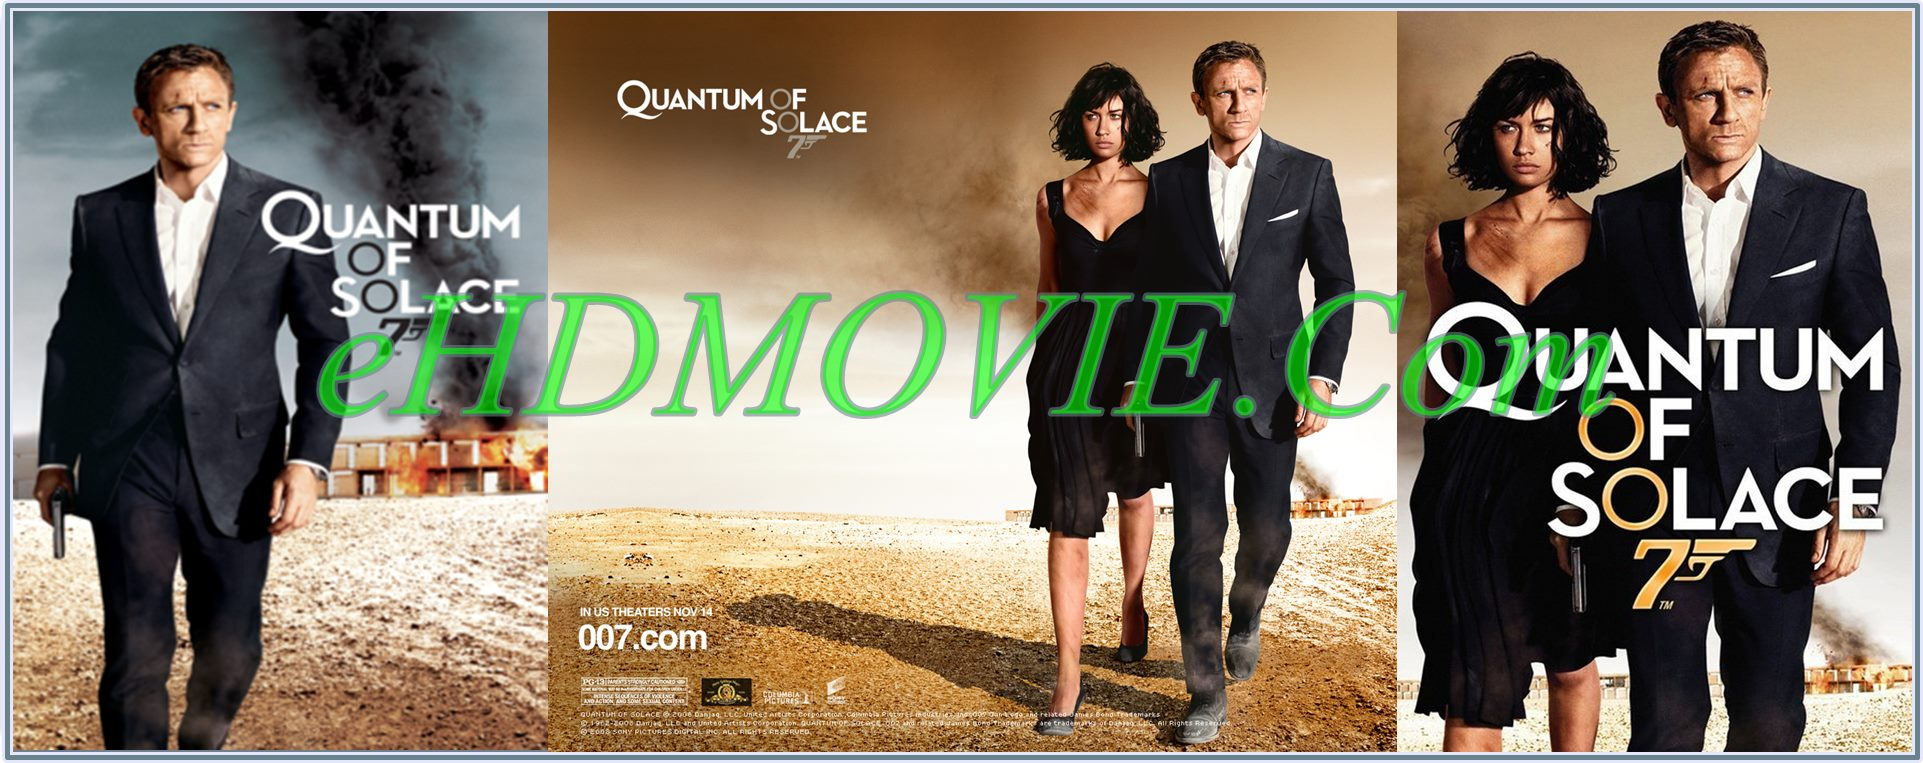 quantum of solace full movie download in hindi